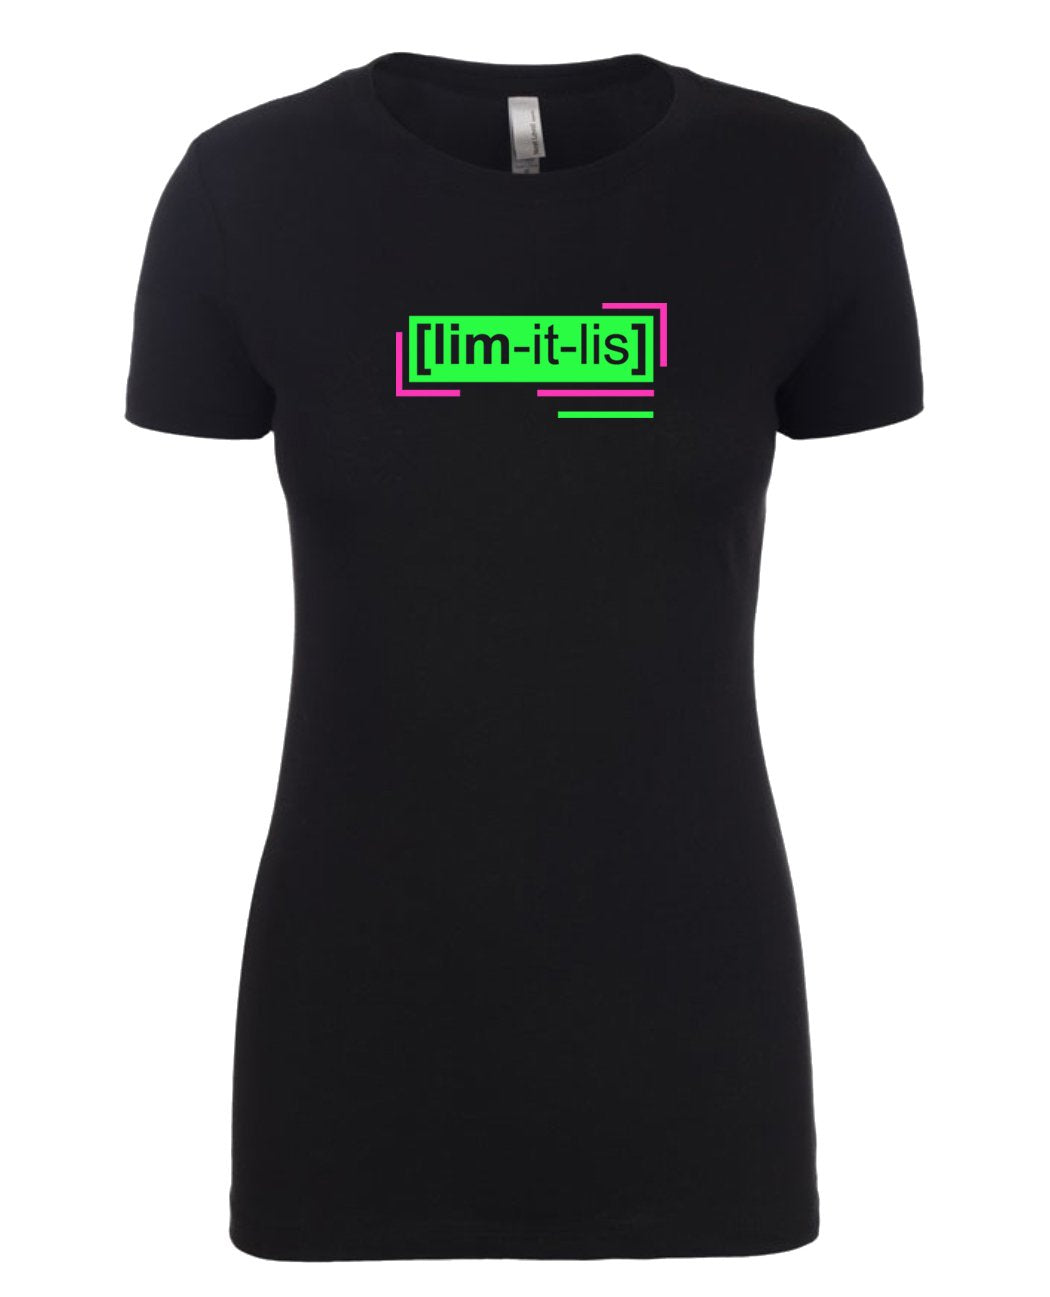 florescent green limitless neon streetwear t shirt for women